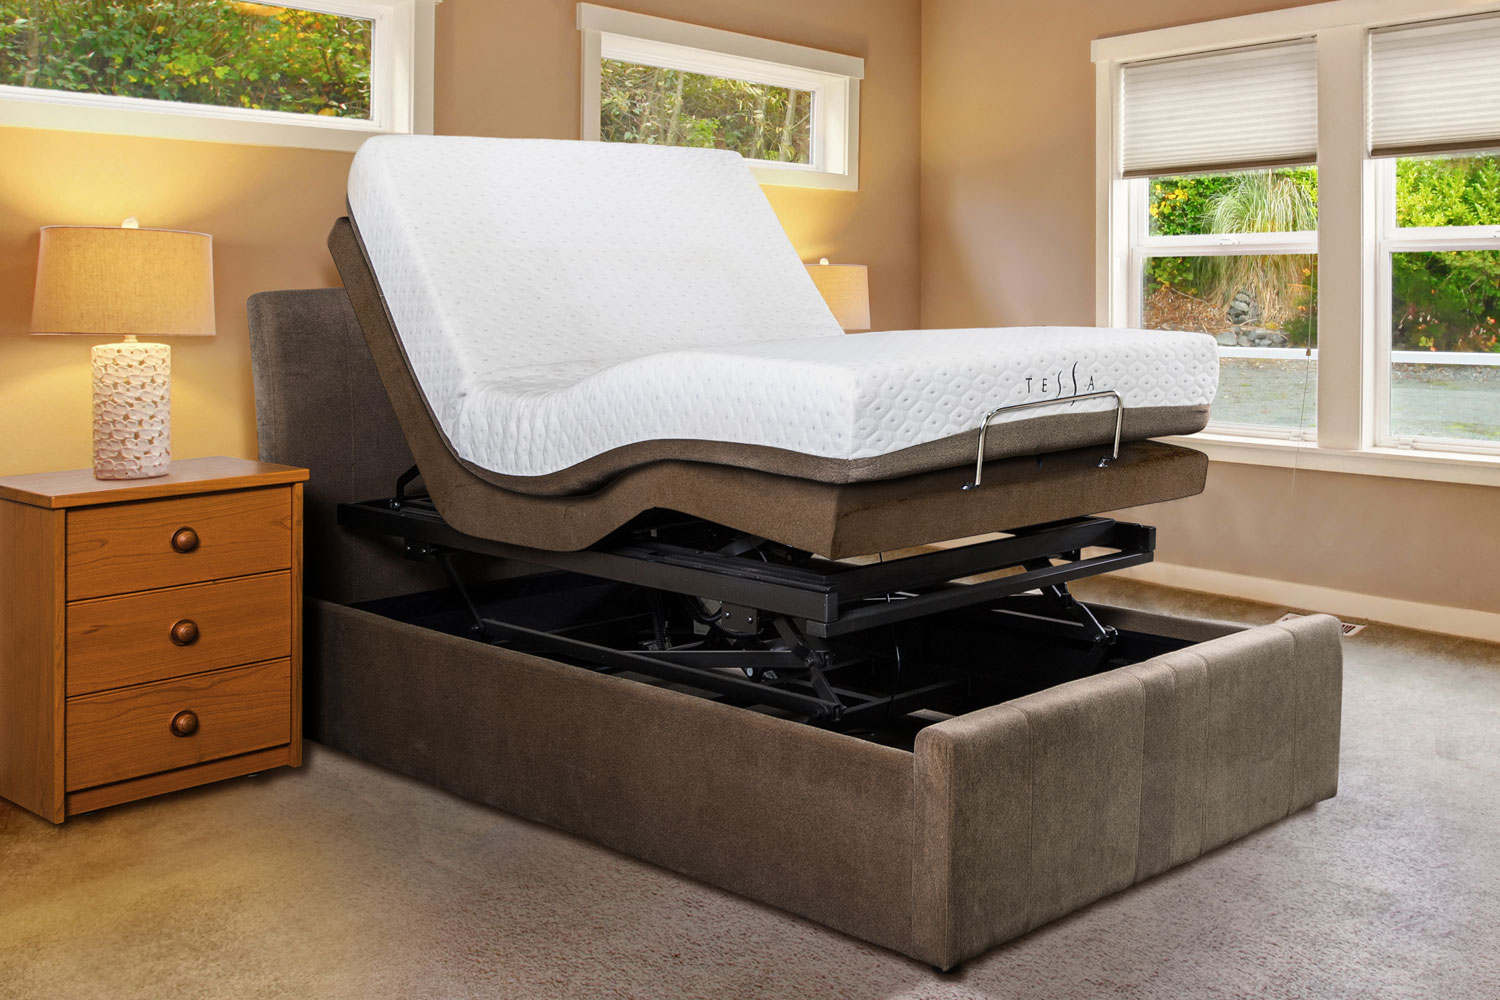 support healthier adjustable blog heres living bed help beds healthy here how s